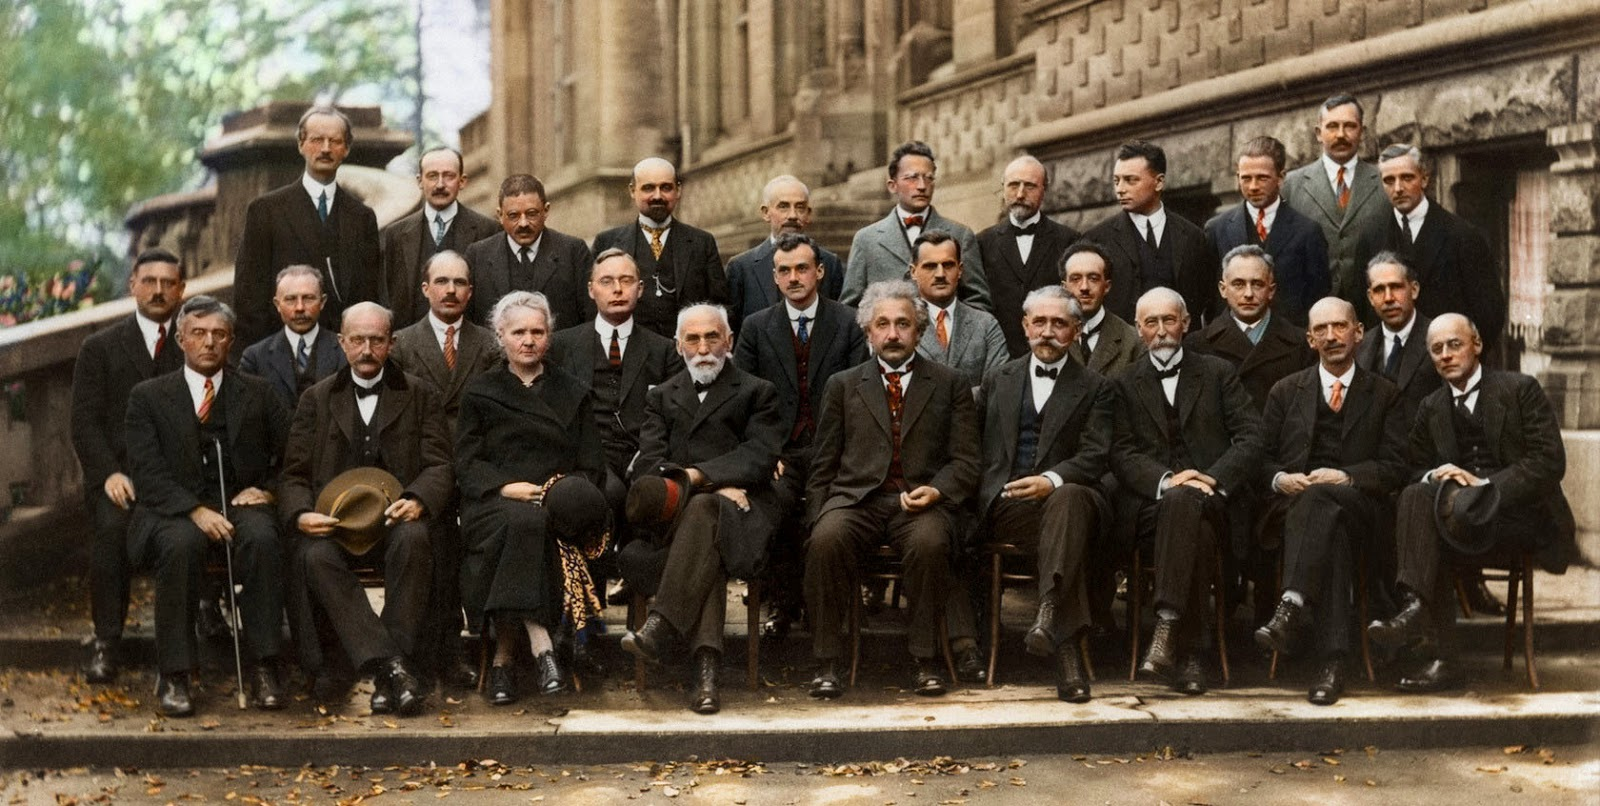 The+Solvay+Conference,+probably+the+most